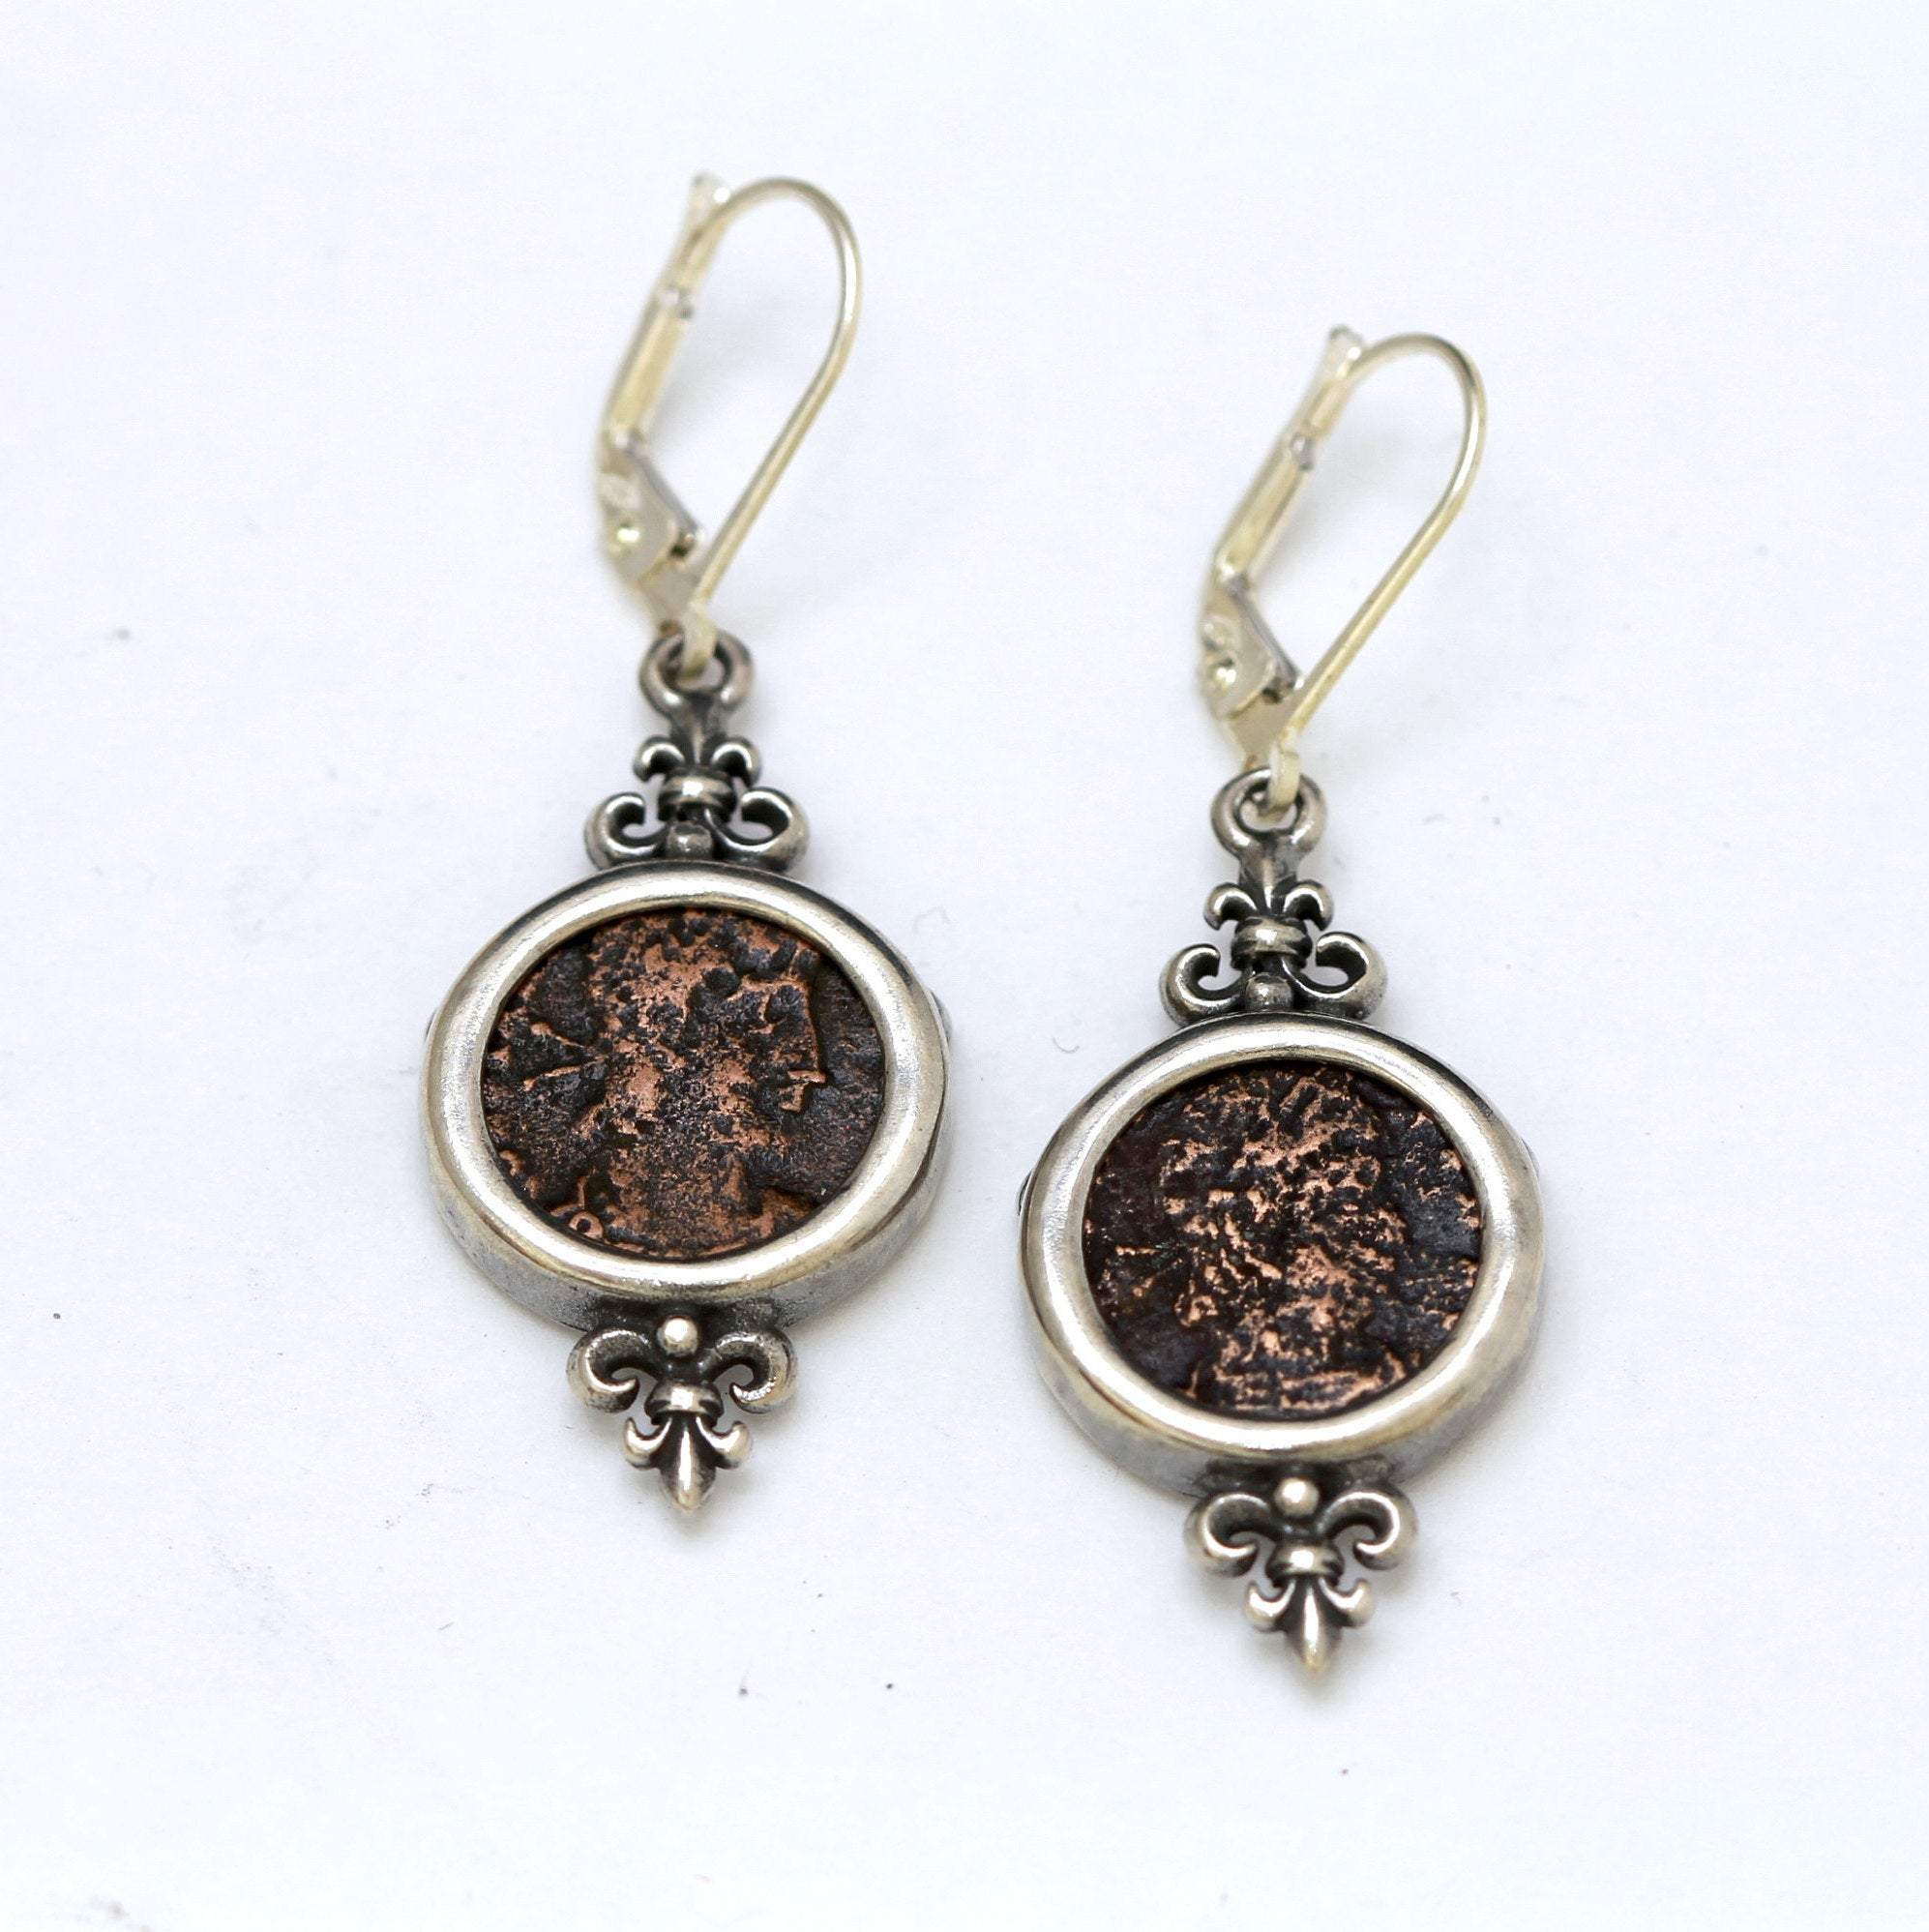 Roman Bronze Coins, Silver Earrings, Genuine Ancient Coins, With Certificate 6504 - Erez Ancient Coin Jewelry, ancient coin jewelry, men jewelry, genuine ancient coins, made in the US